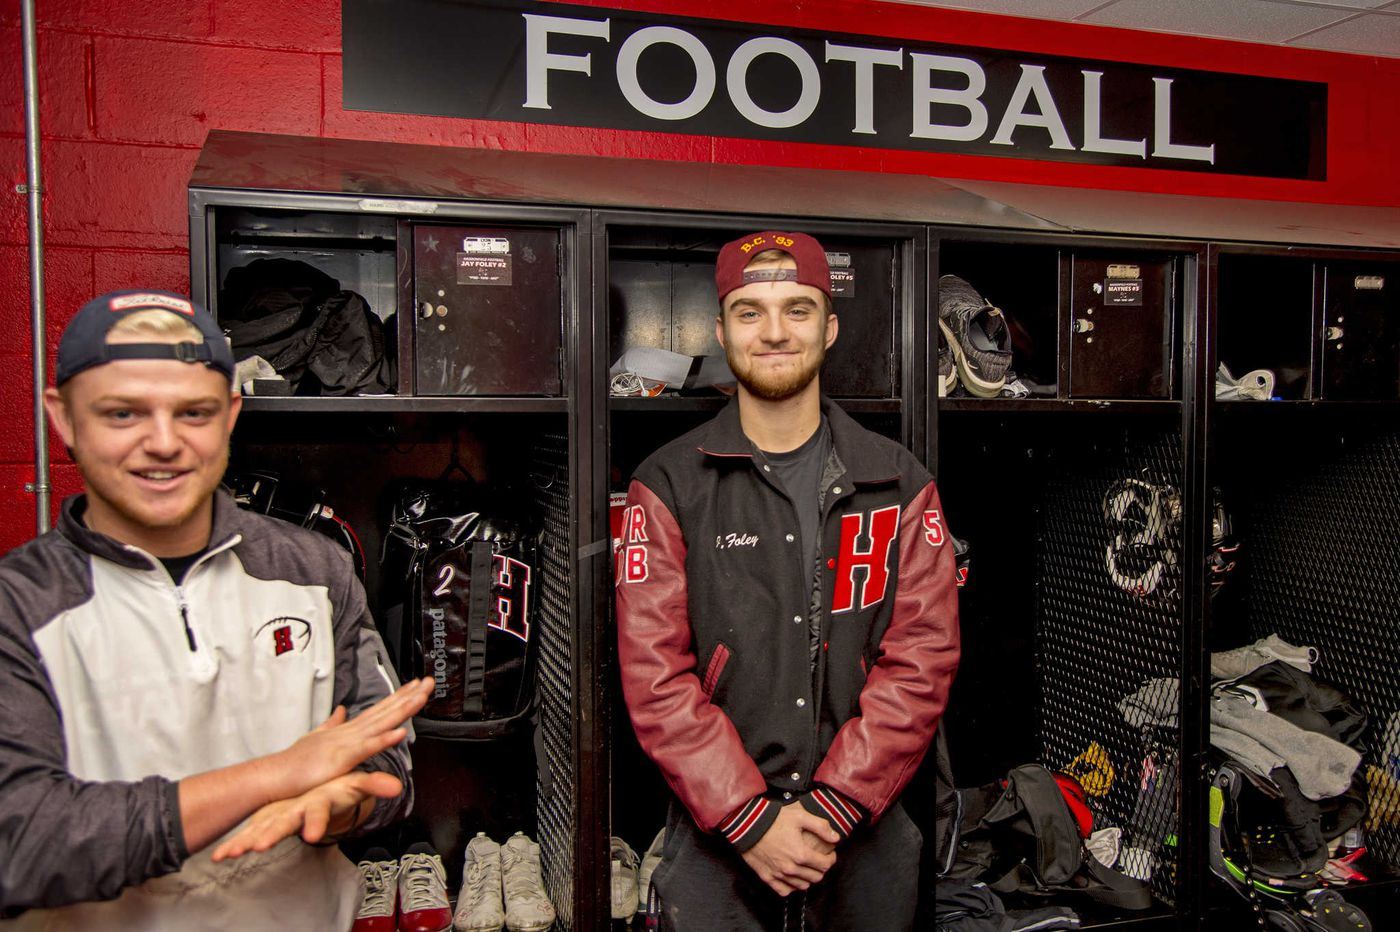 Haddonfield's Foley twins will play one last football game together